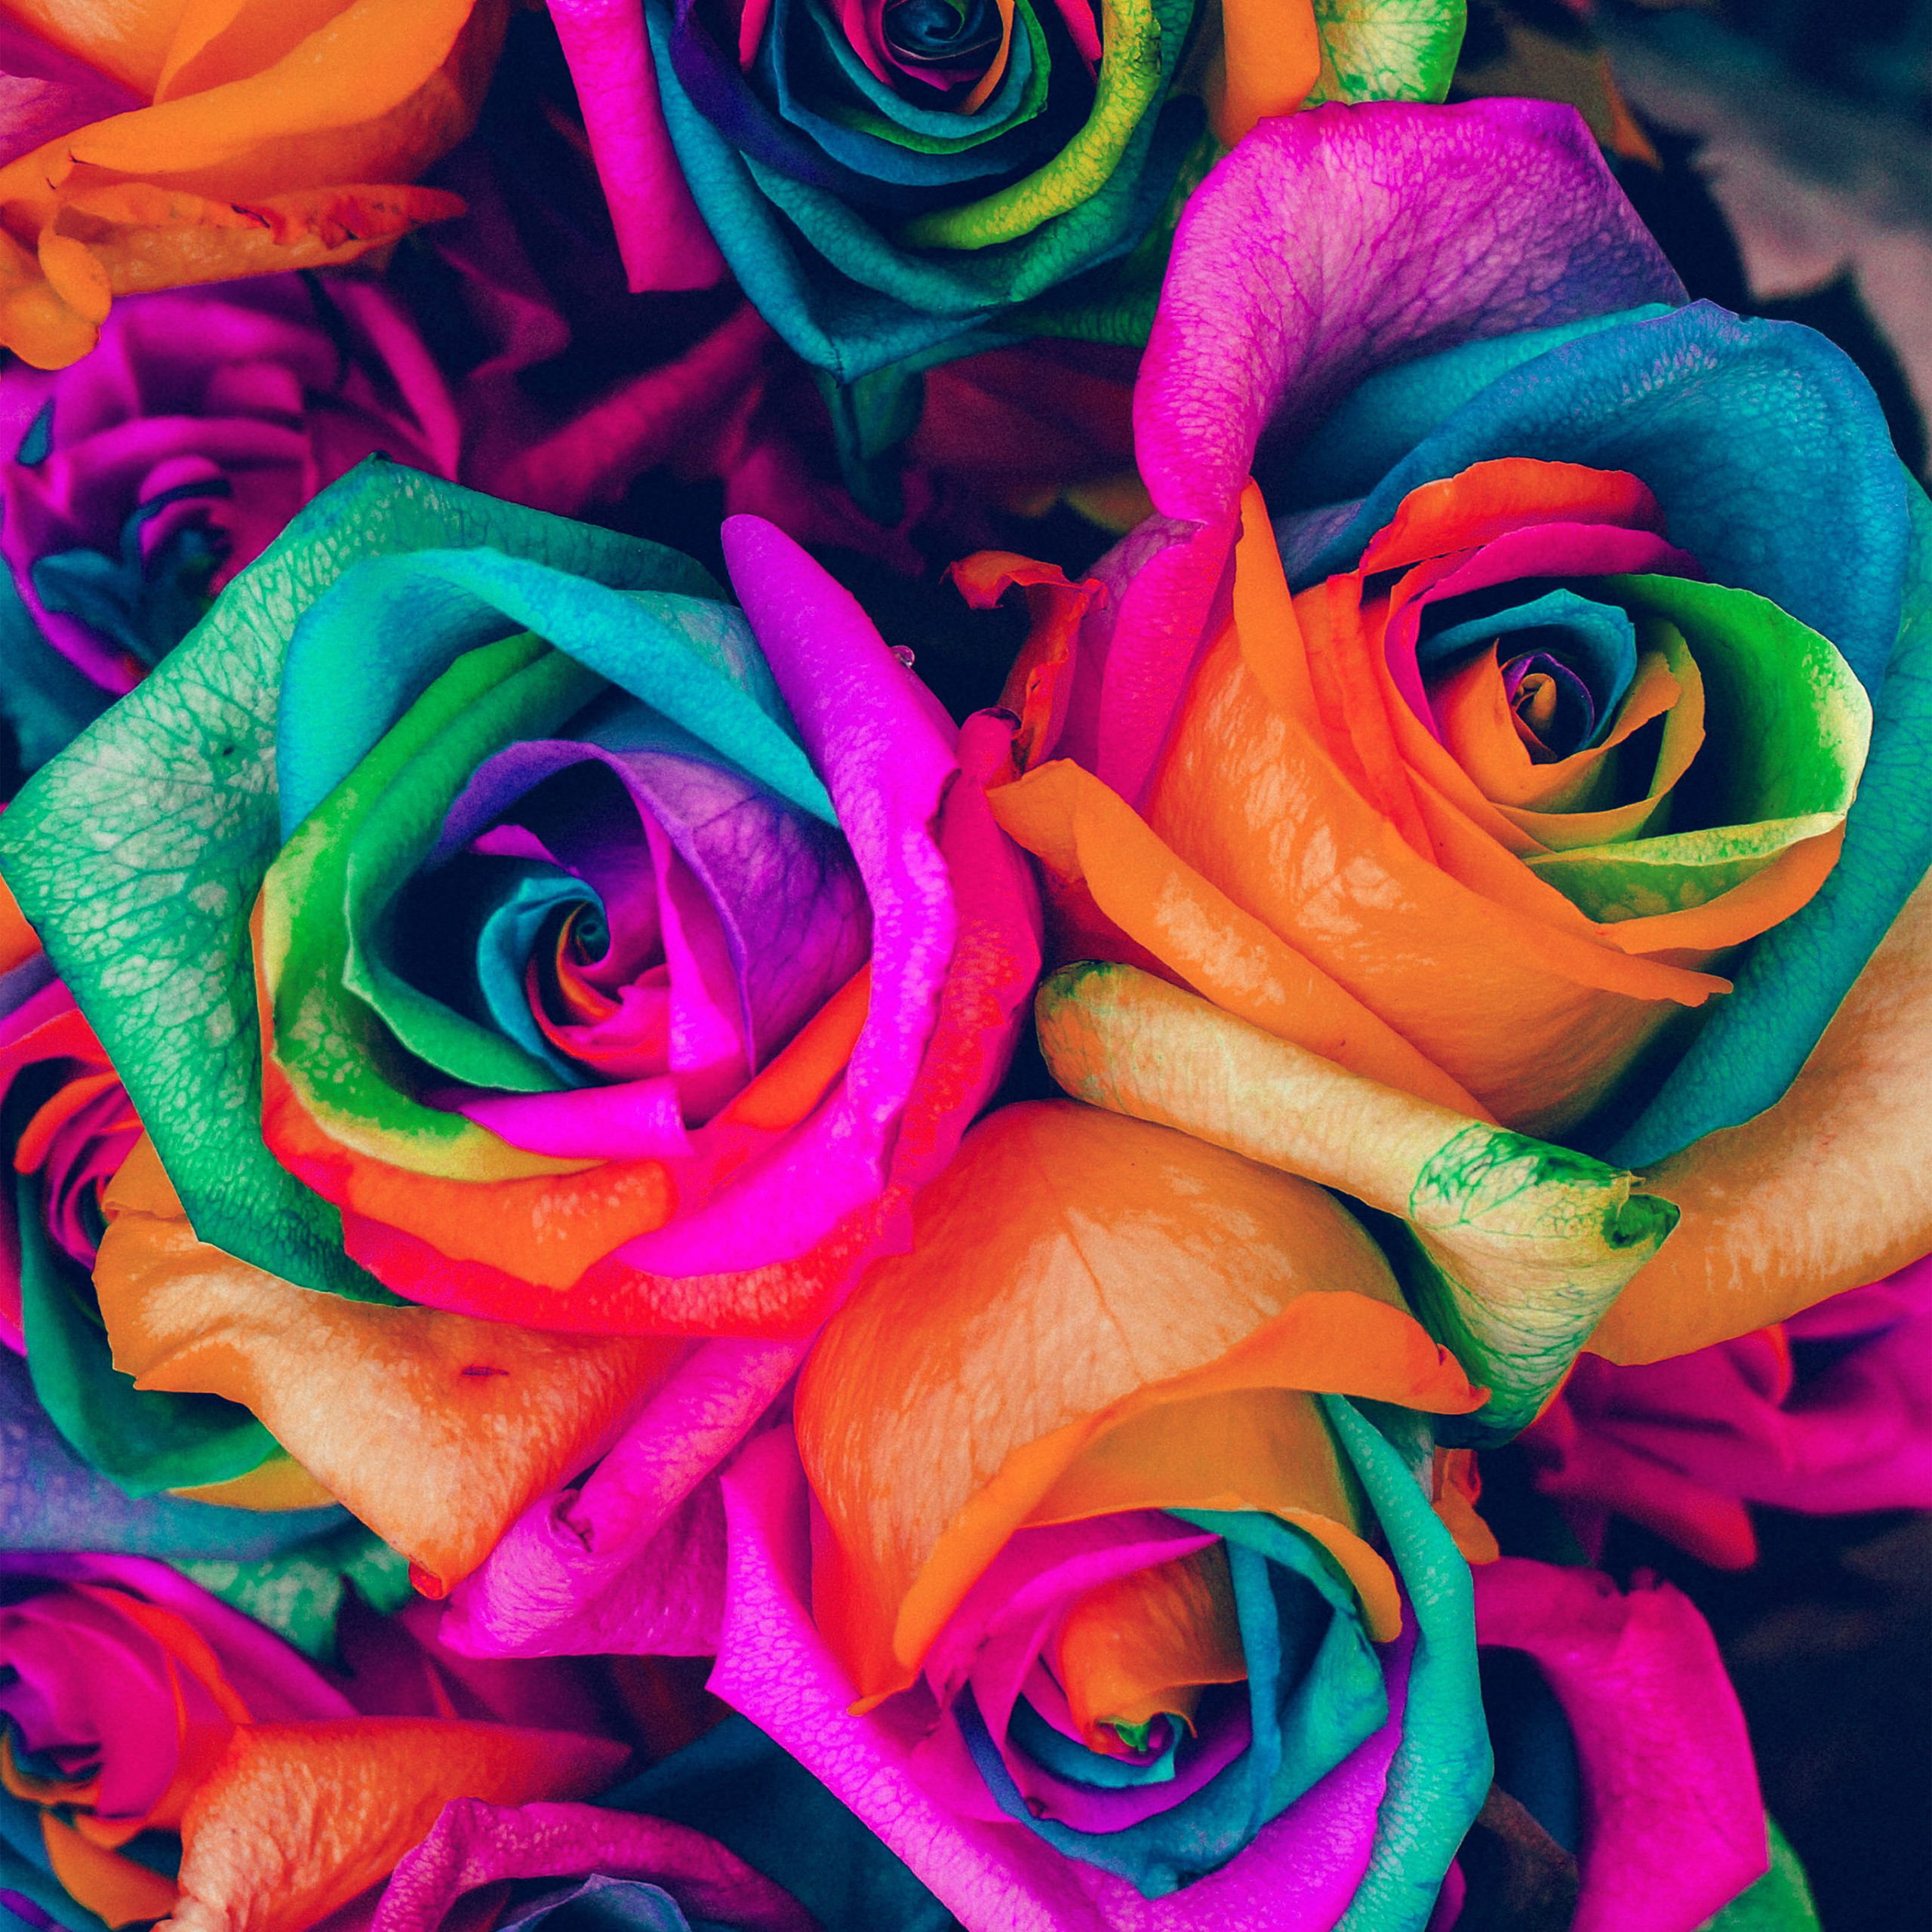 papers as99 flower rose color blue rainbow art nature 40 wallpaper